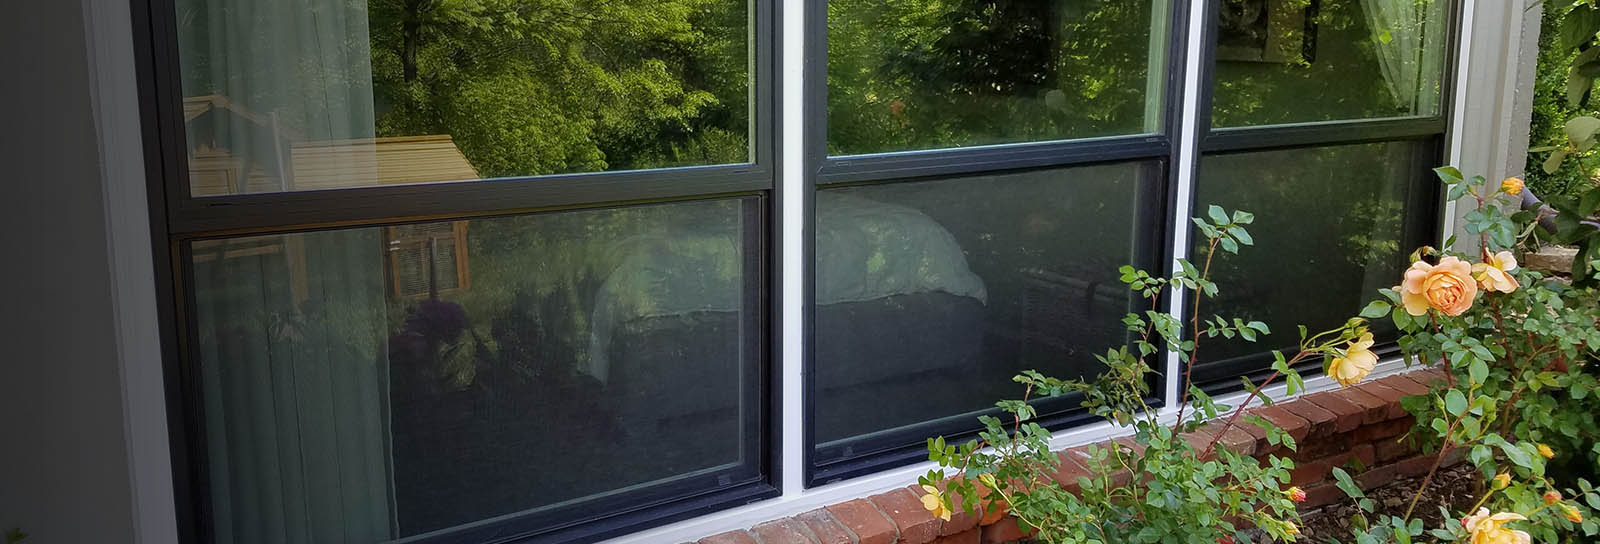 Window-Replacement-Near-Me